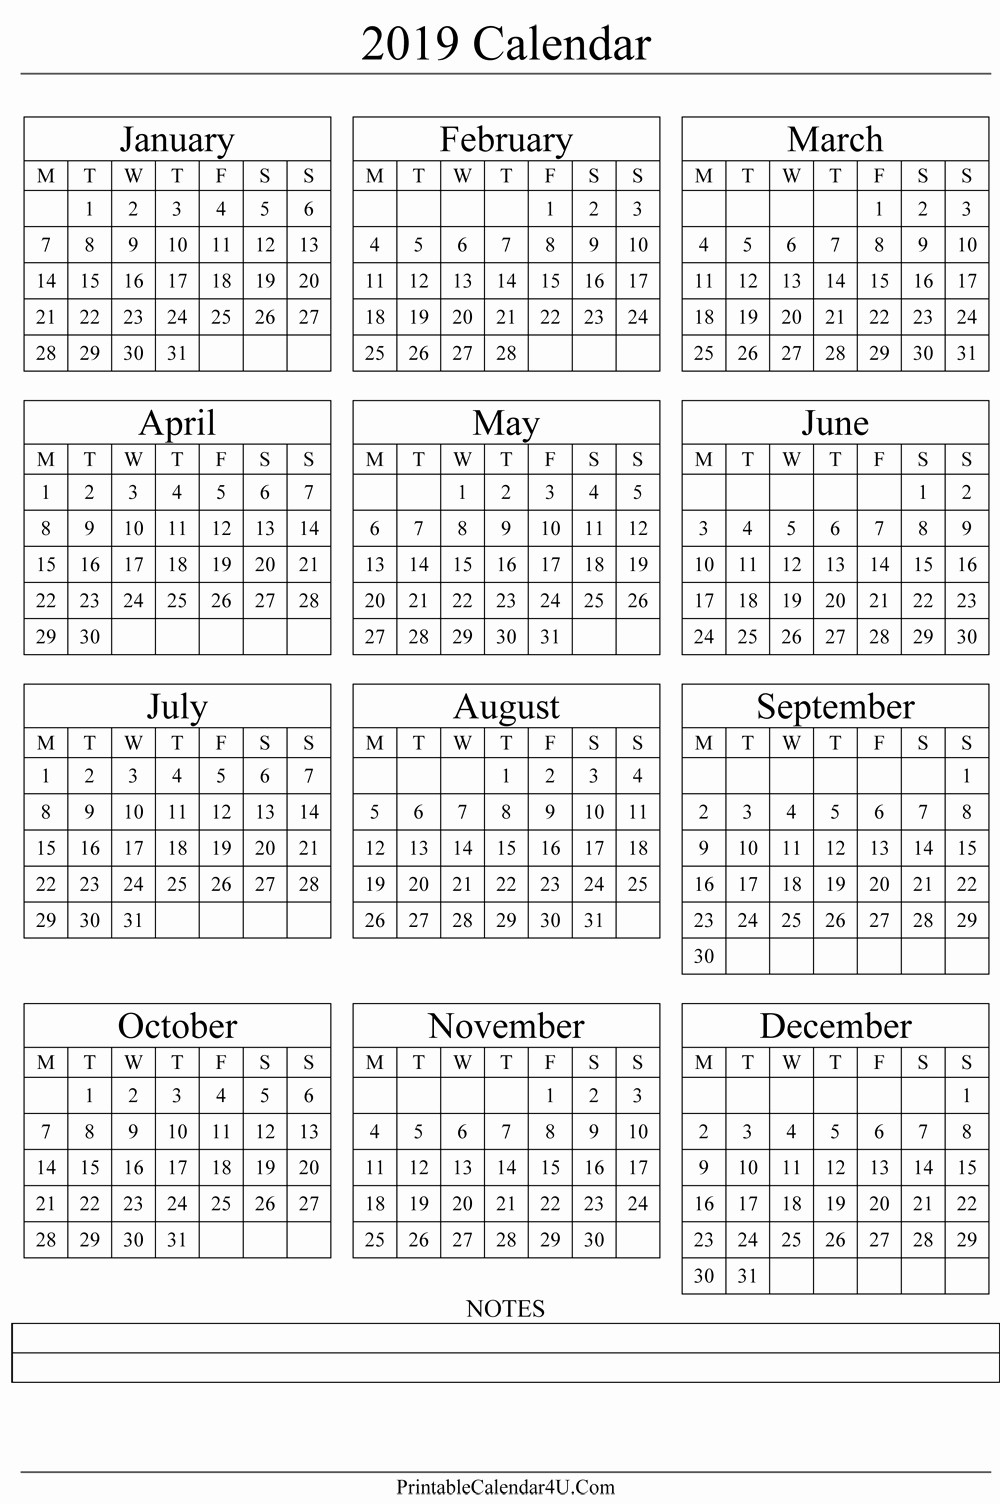 2019 Yearly Calendar One Page Fresh Annual Calendar 2019 Portrait Printable Calendar 2019 2020